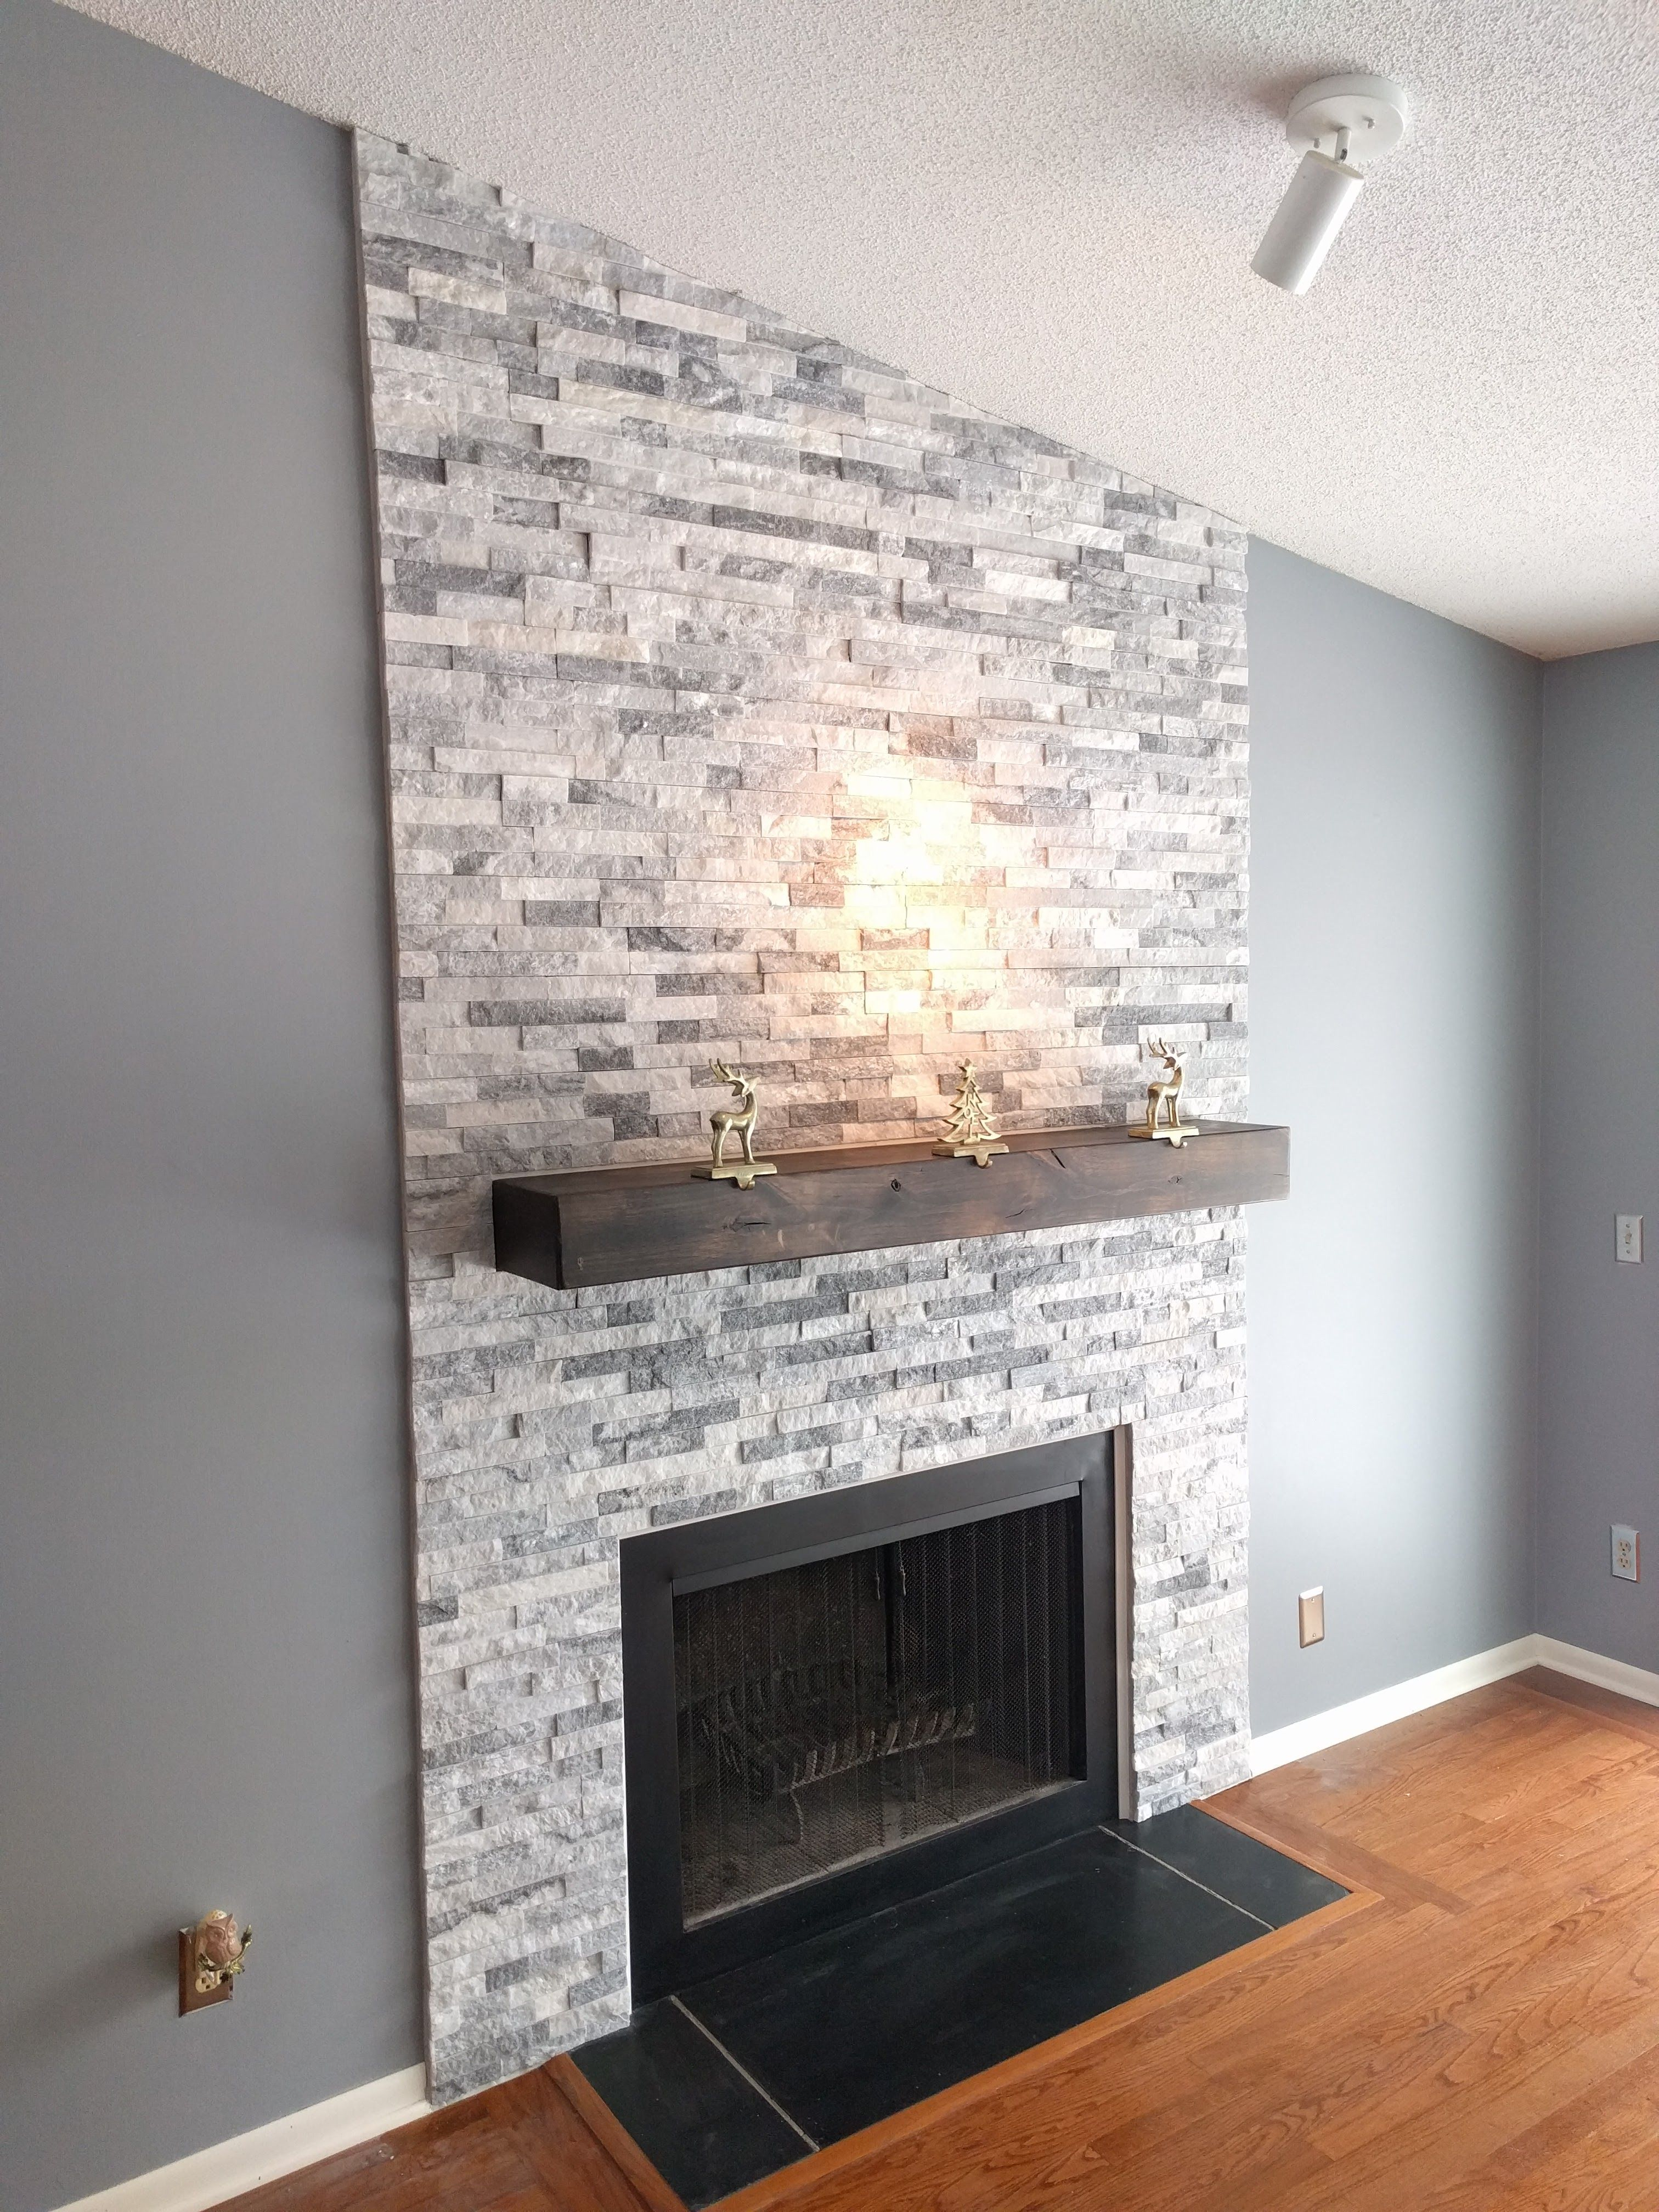 Best Modern Fireplaces (Tile & Design) images in Here | # ...